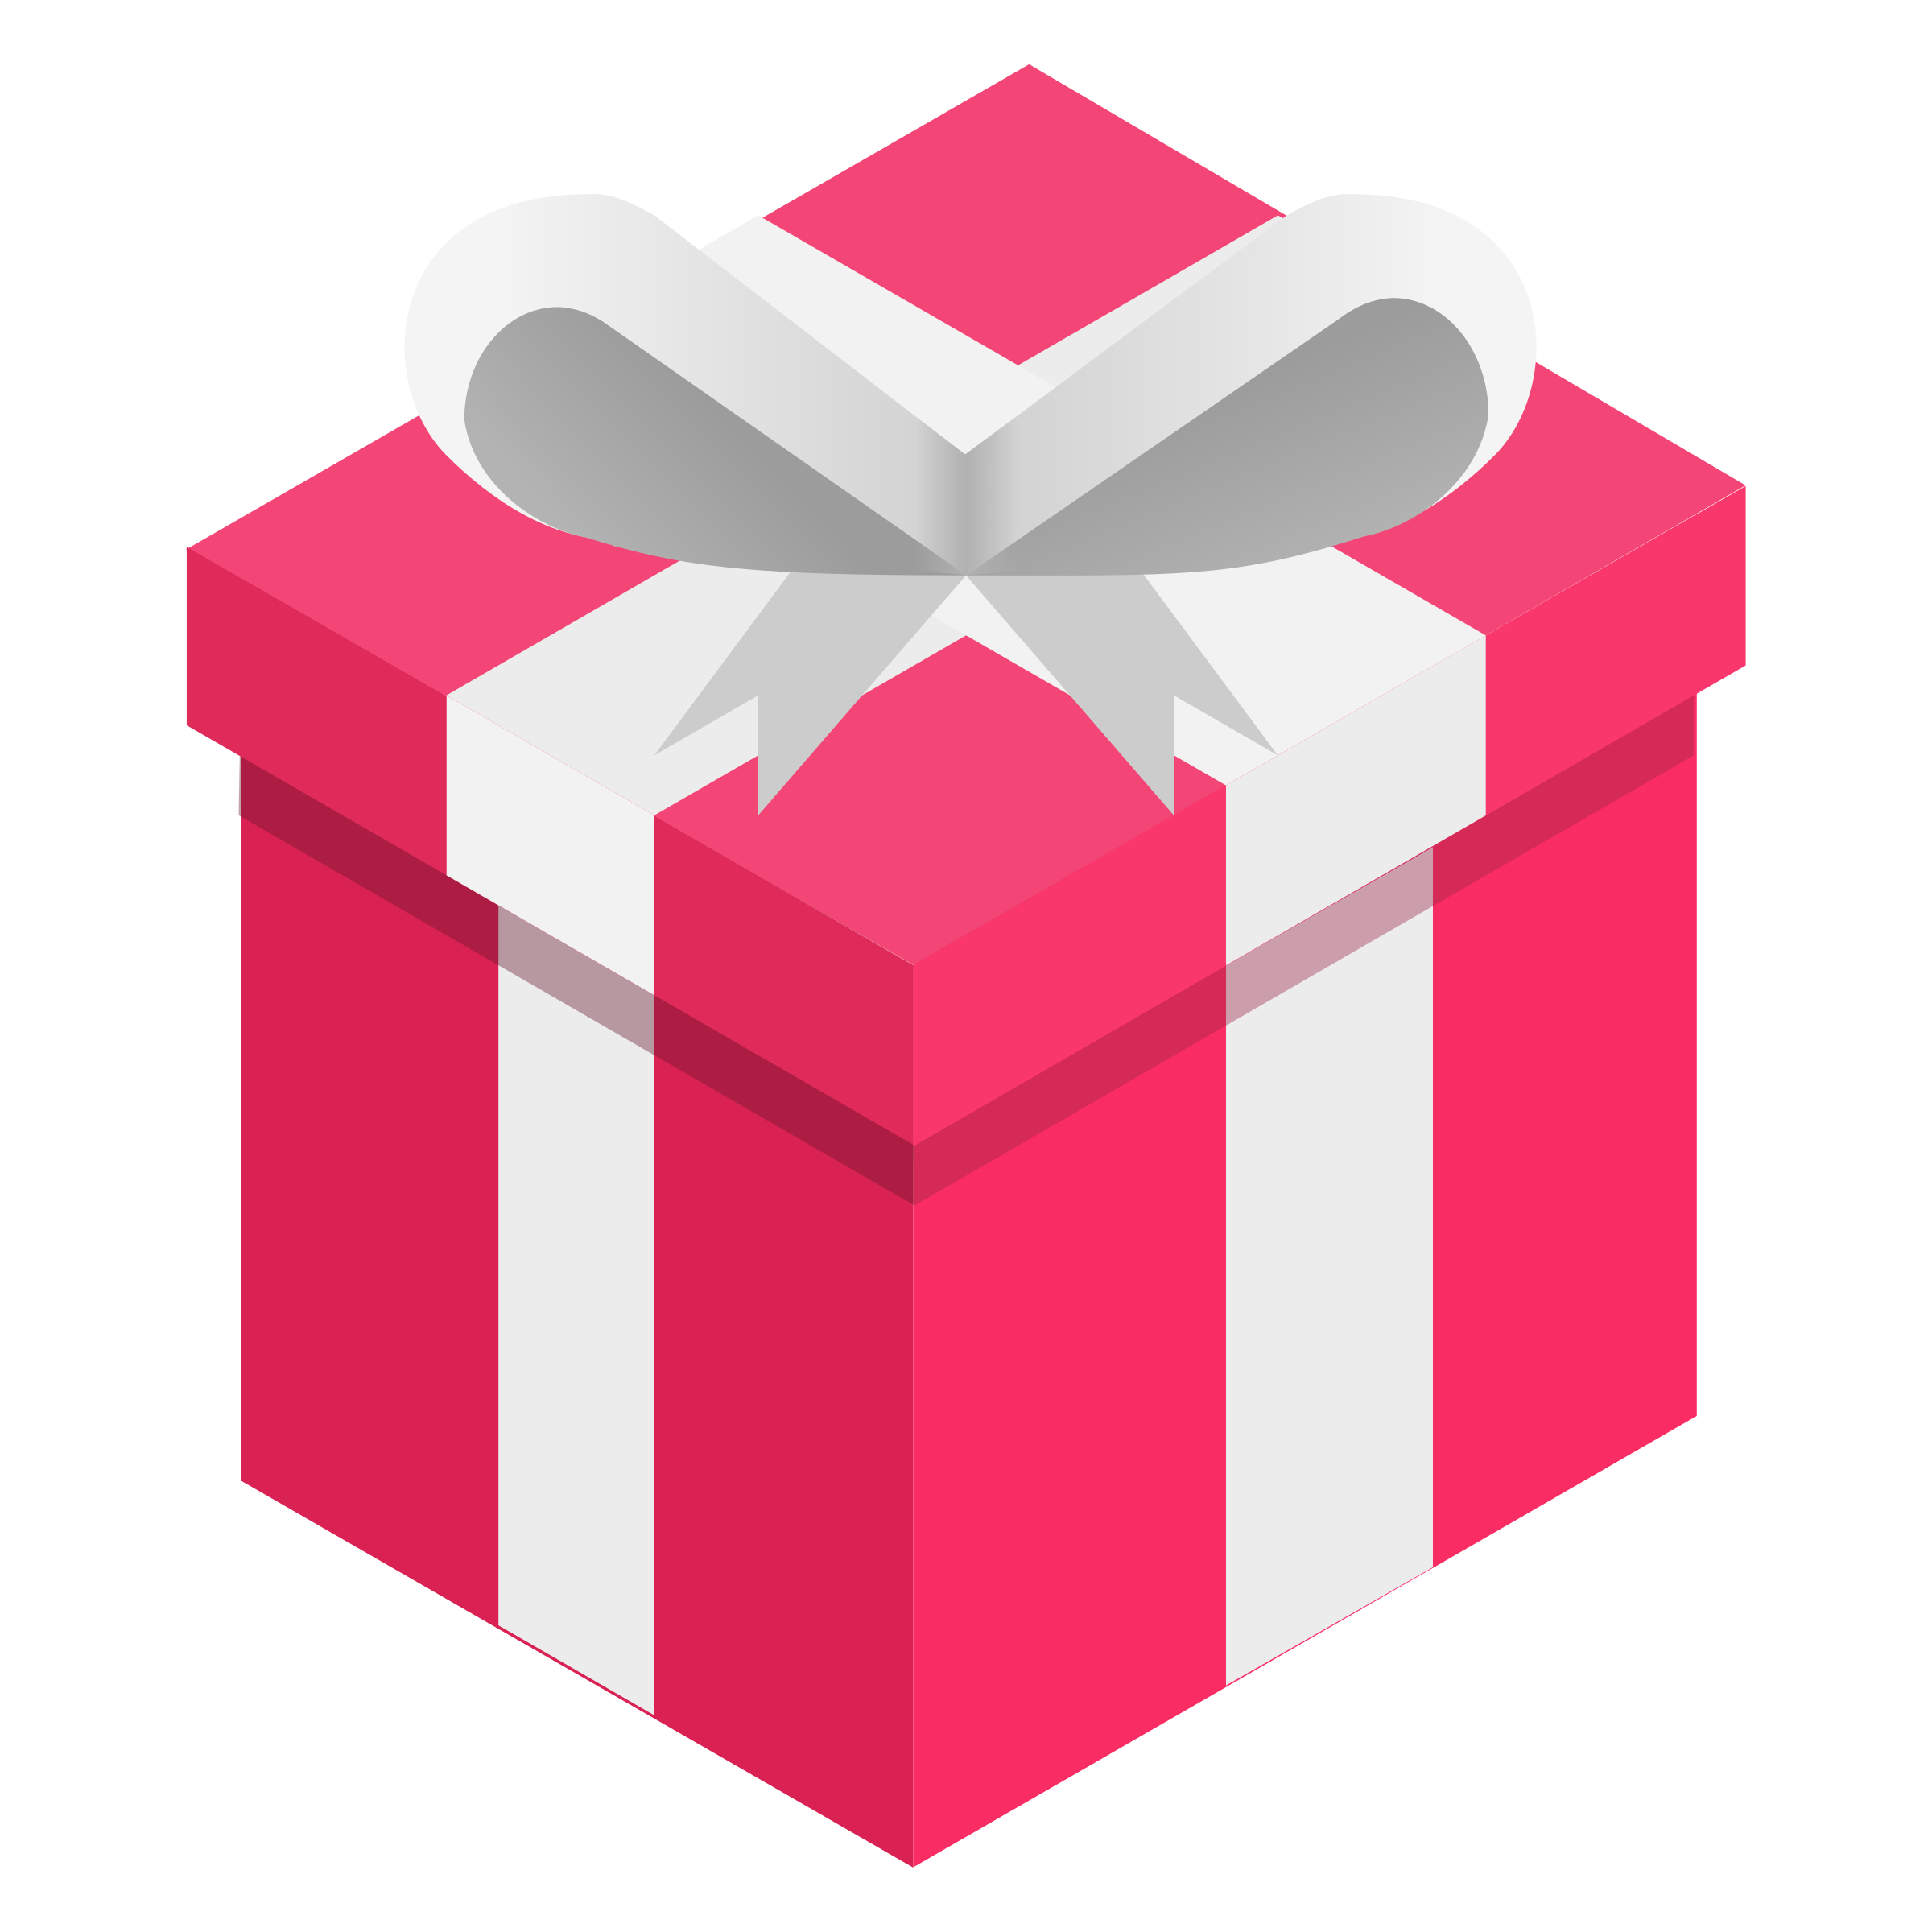 Clipart flashing present box png library download Present box clipart - ClipartFest png library download